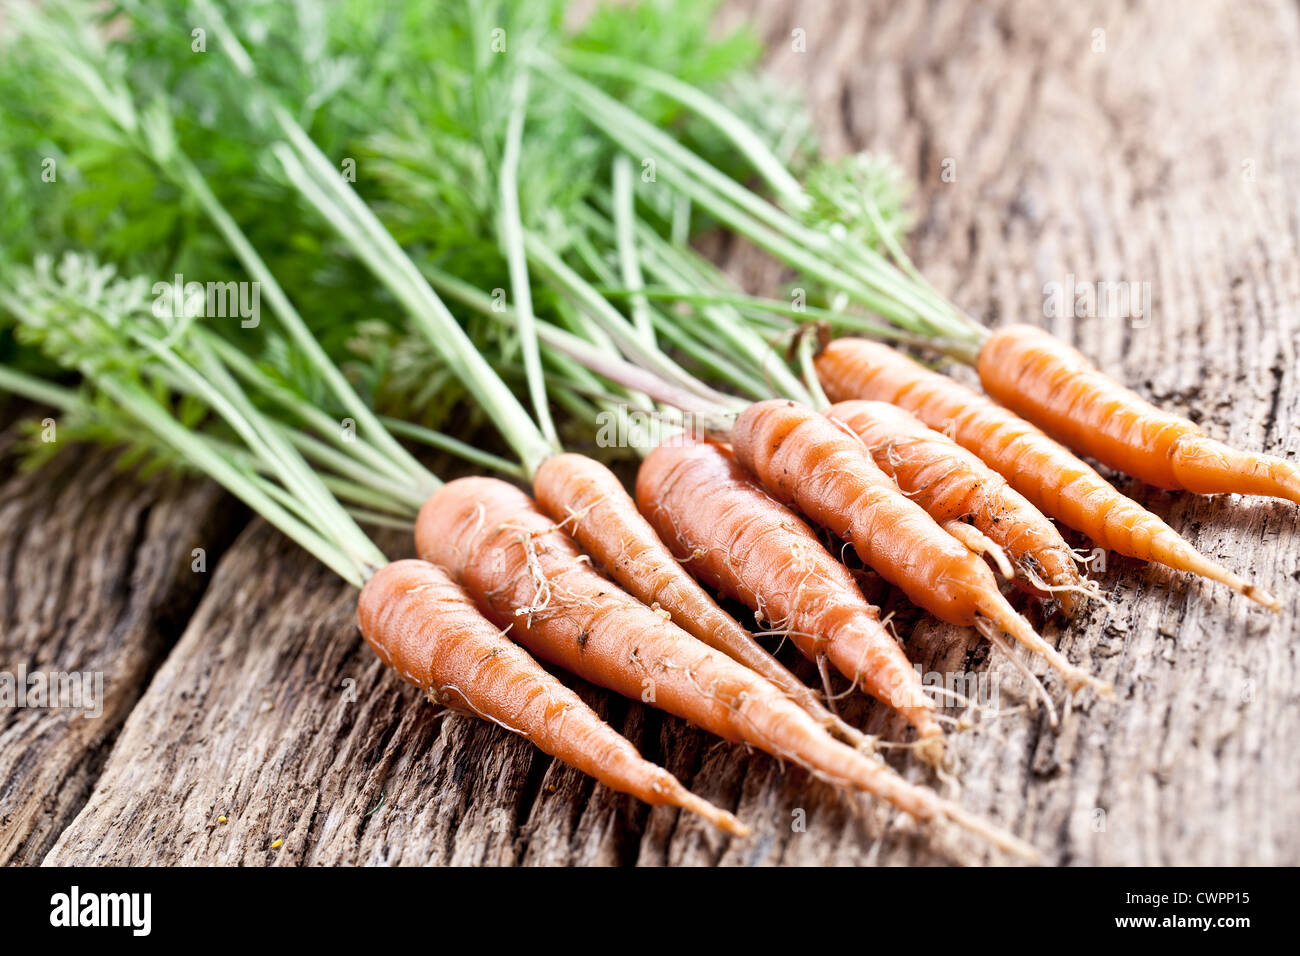 Carrots with leaves on a old wooden table. - Stock Image